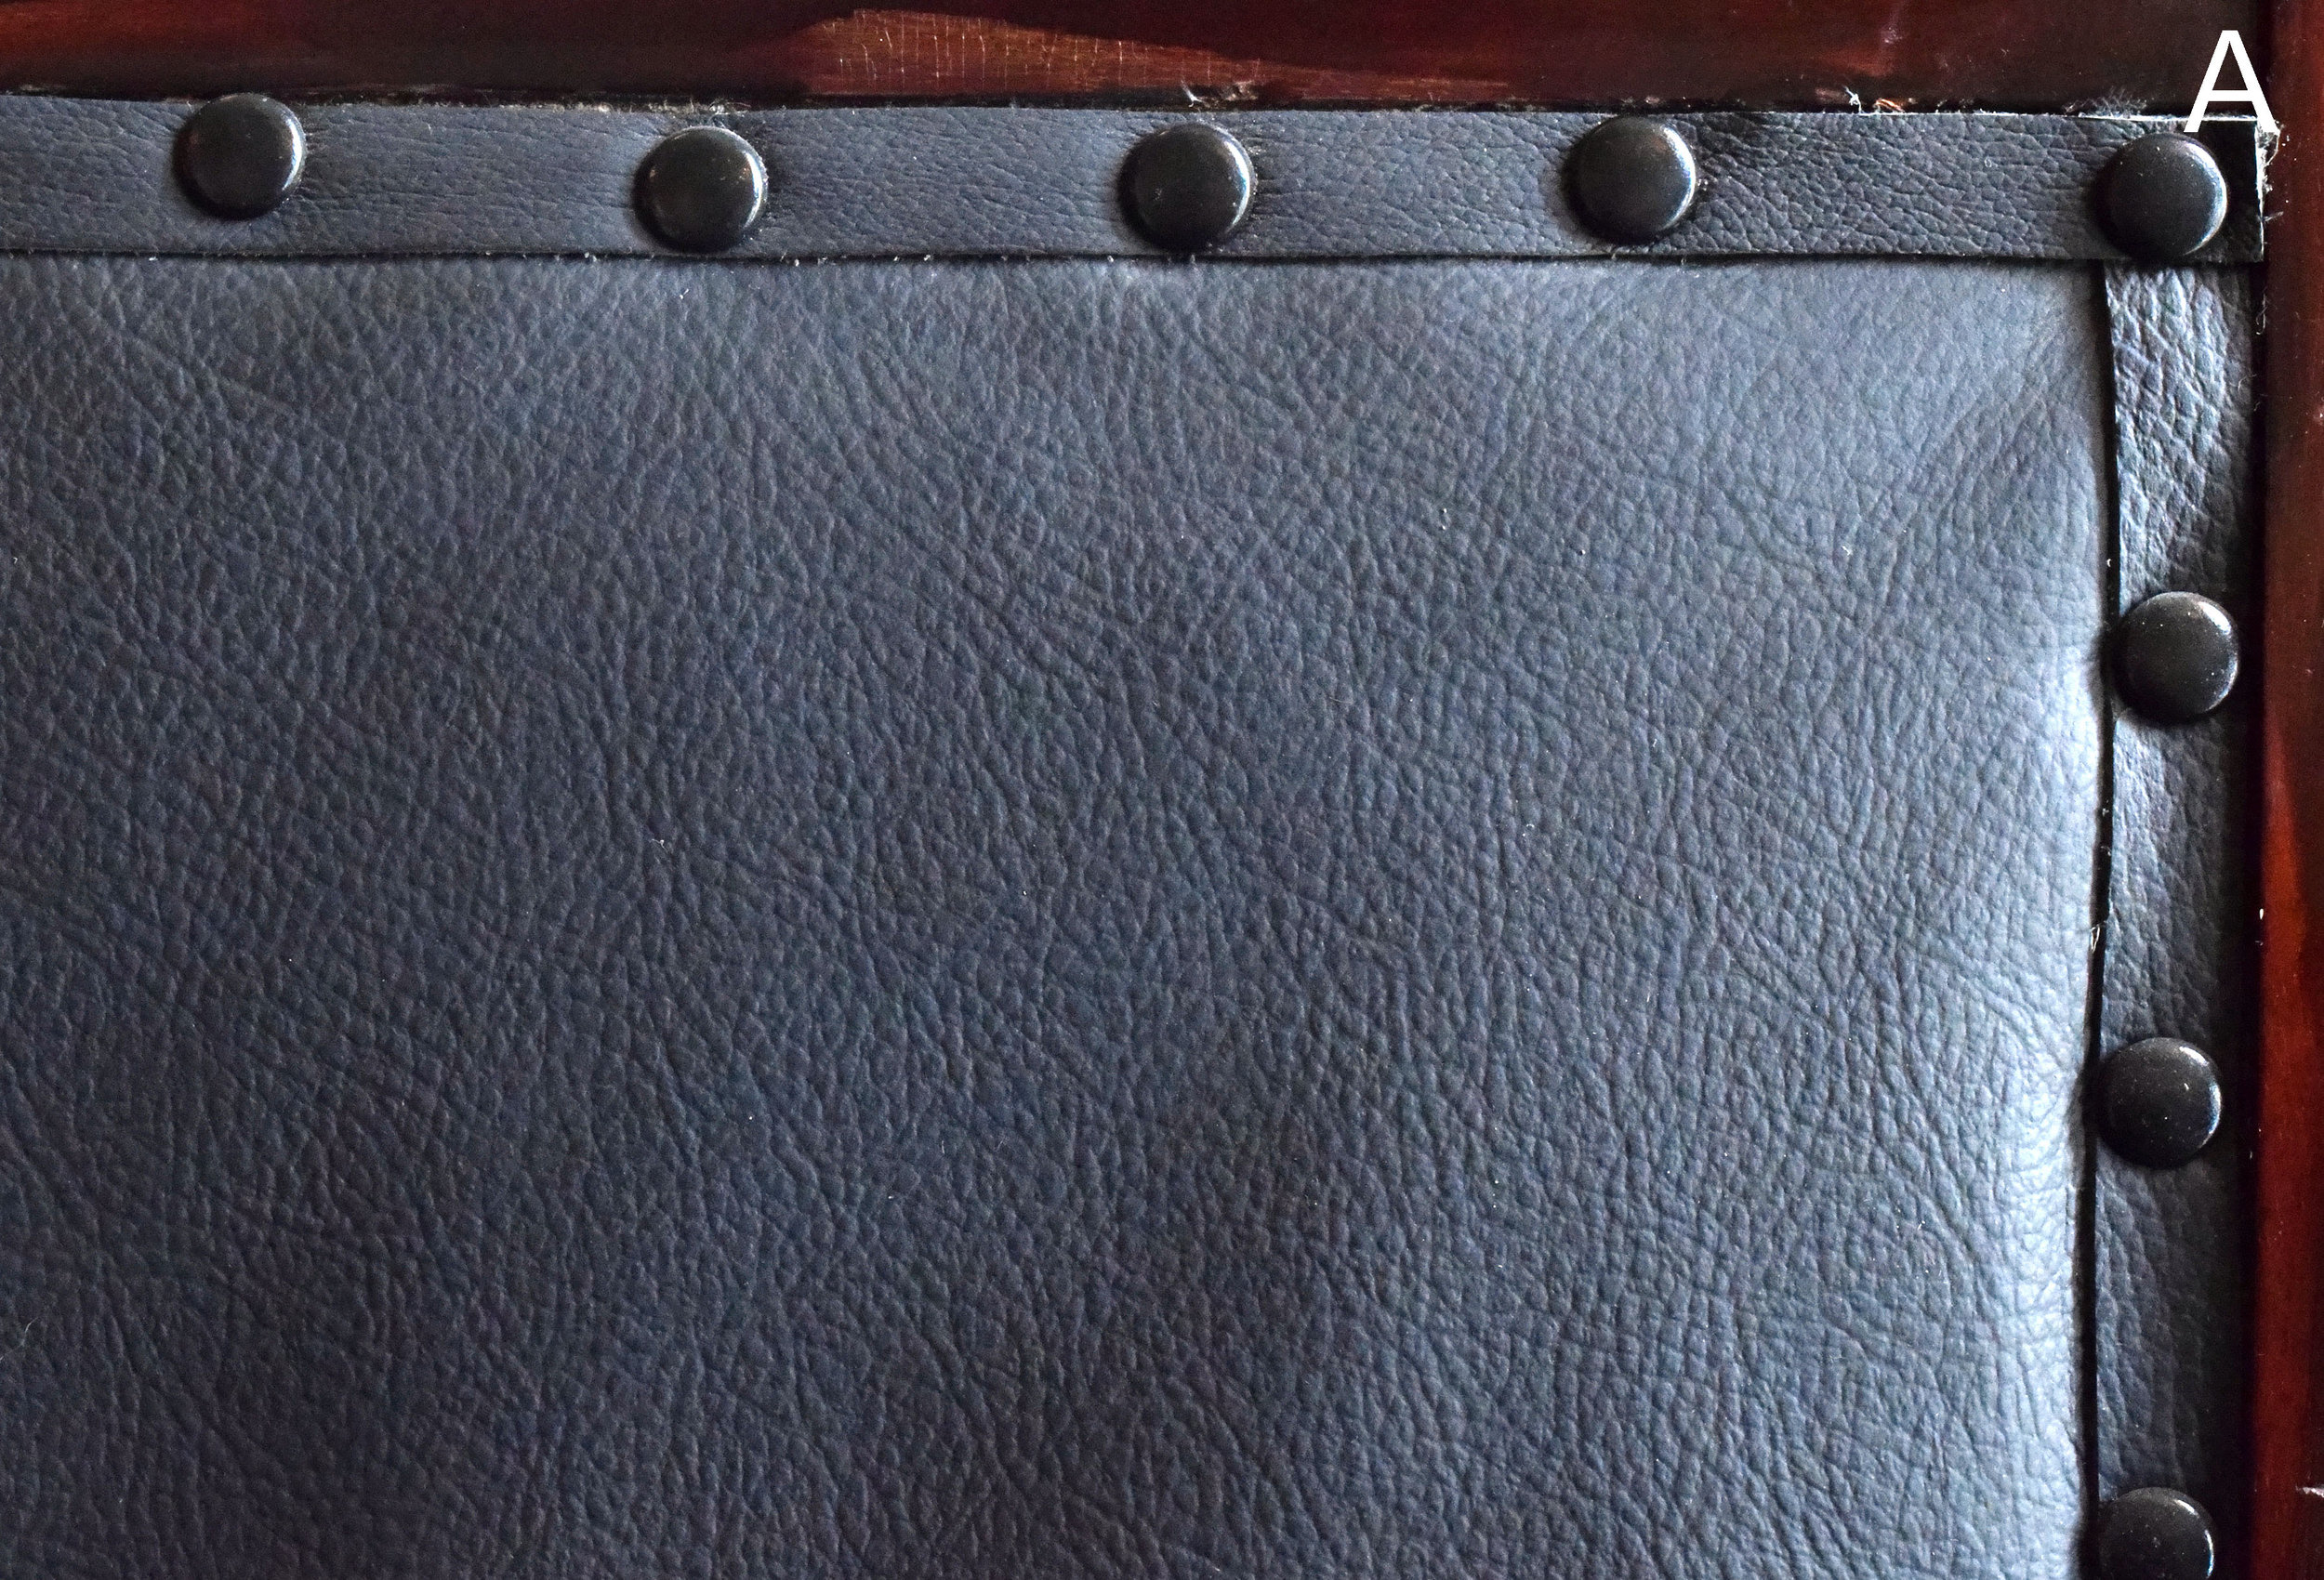 47054-straight-courhouse-bench-leather-detail.jpg